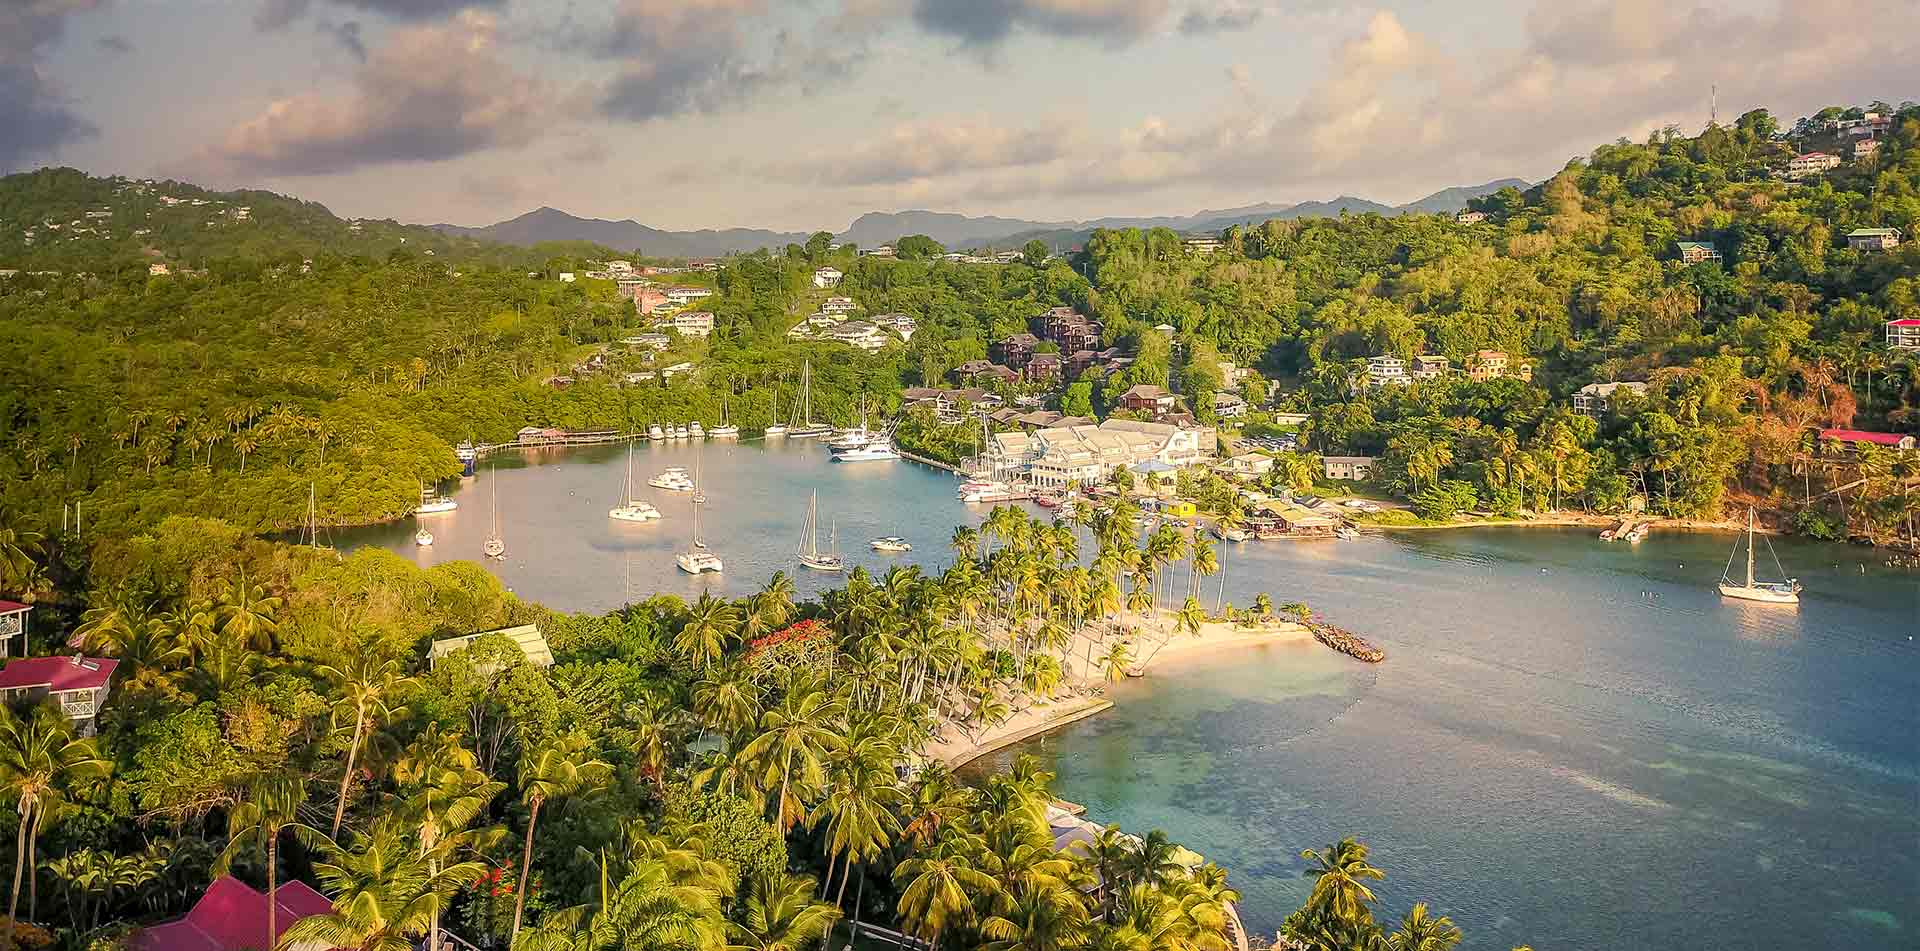 Latin America Caribbean West Indies St. Saint Lucia Sailing sail boats in Marigot Bay harbor - luxury vacation destinations